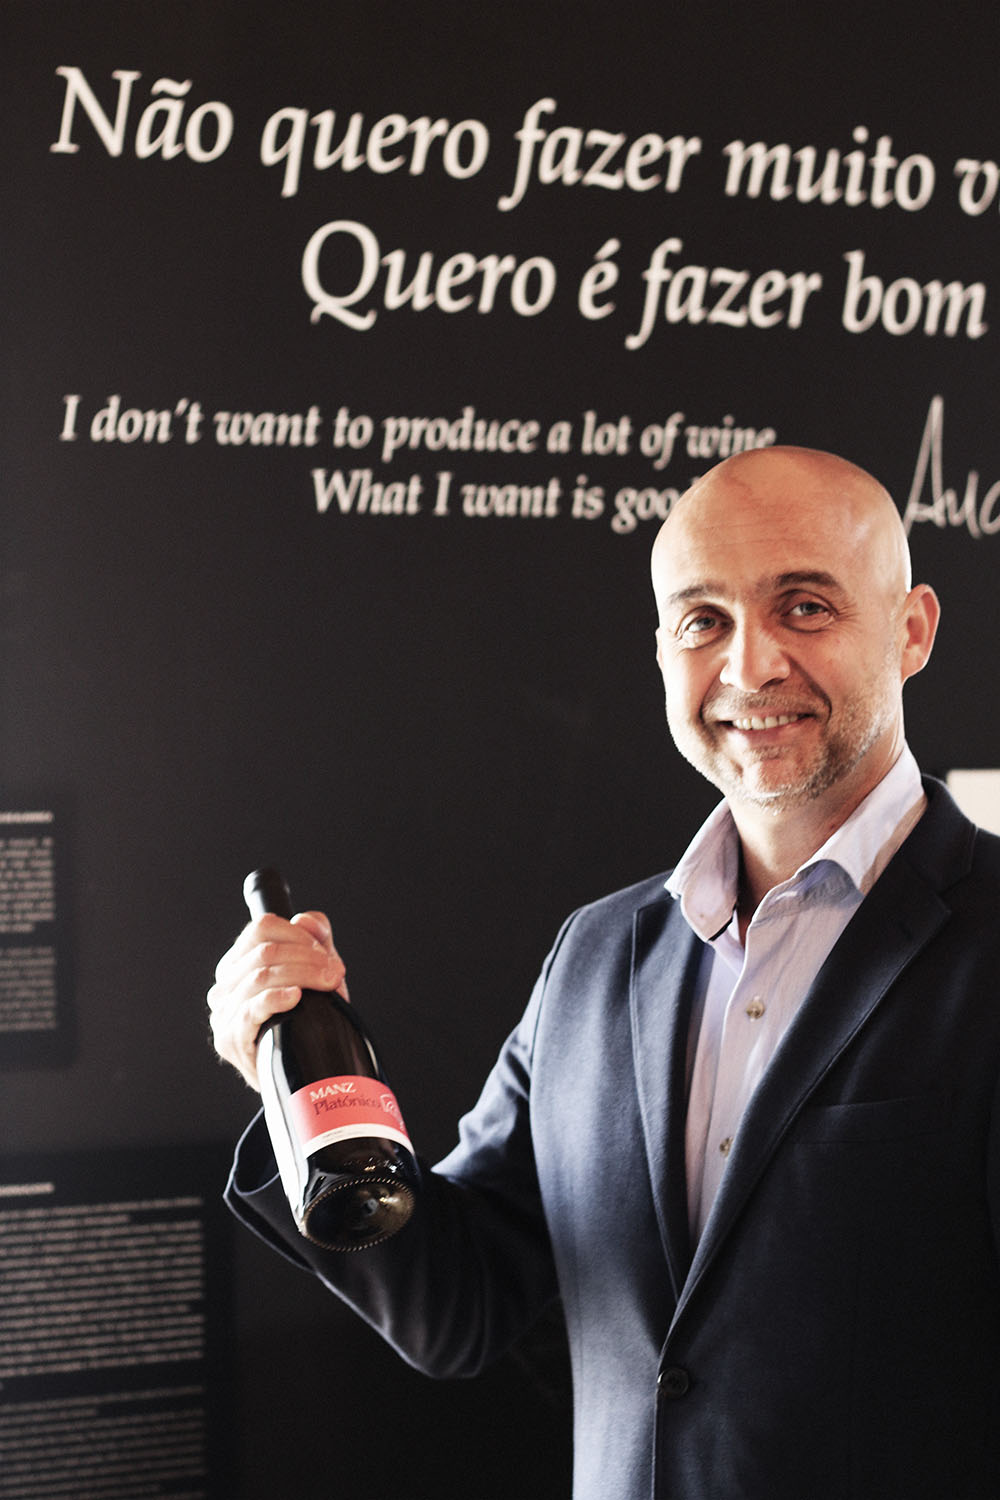 Owner Manzwine in Lisboa